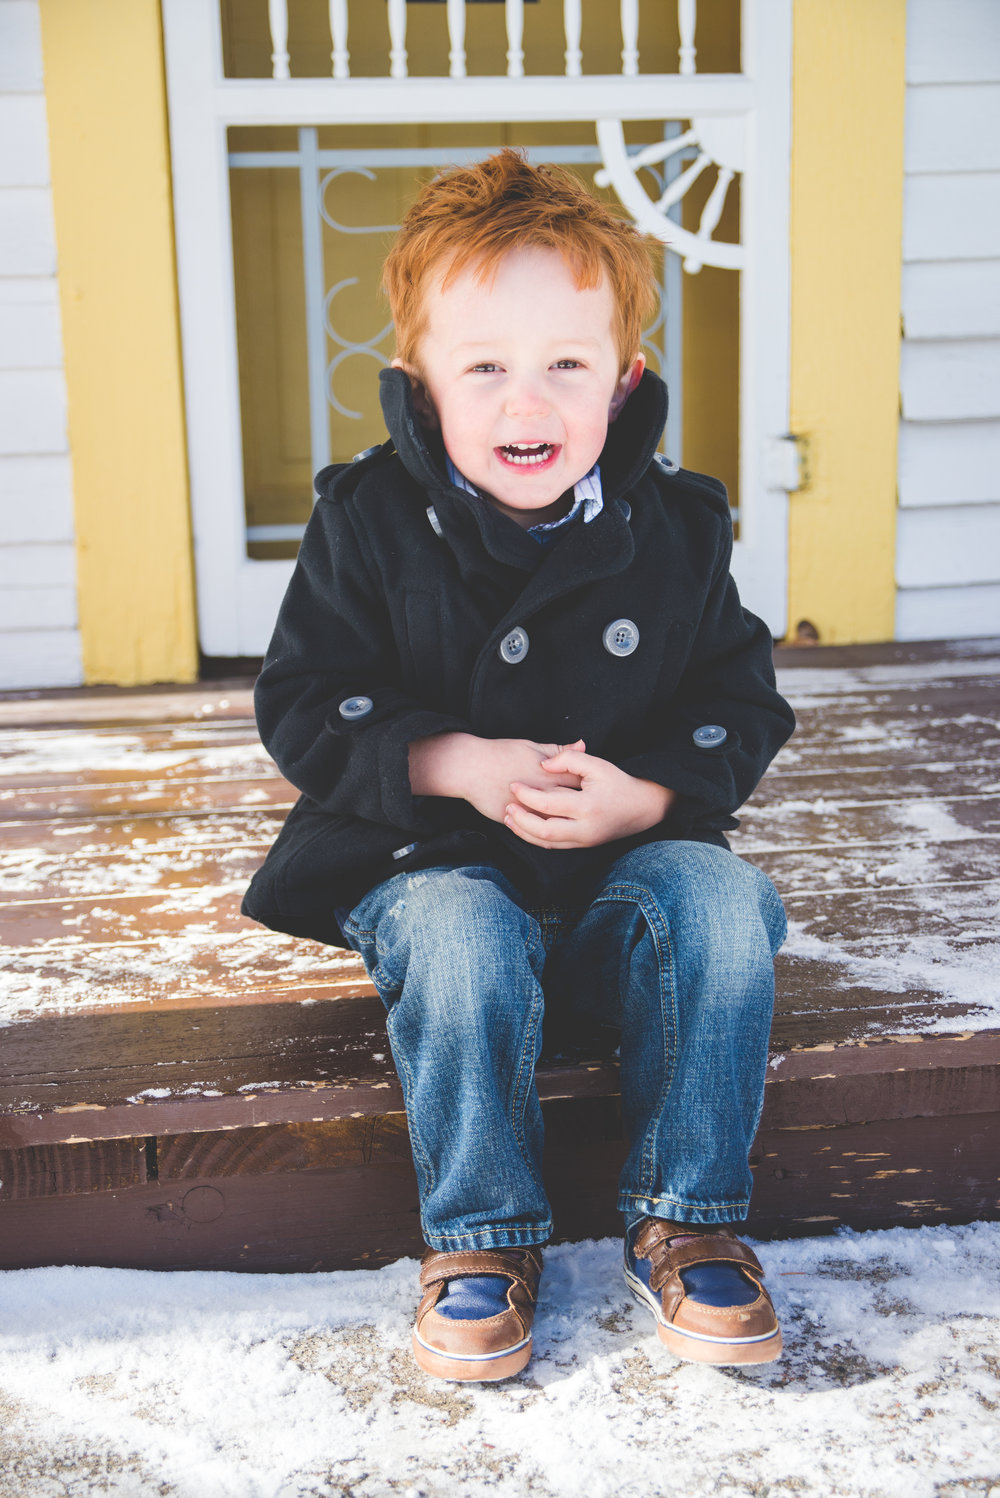 Winter family photos in Frisco, Colorado | Prepping your Little Ones for Portrait Sessions | Keeping Composure Photography